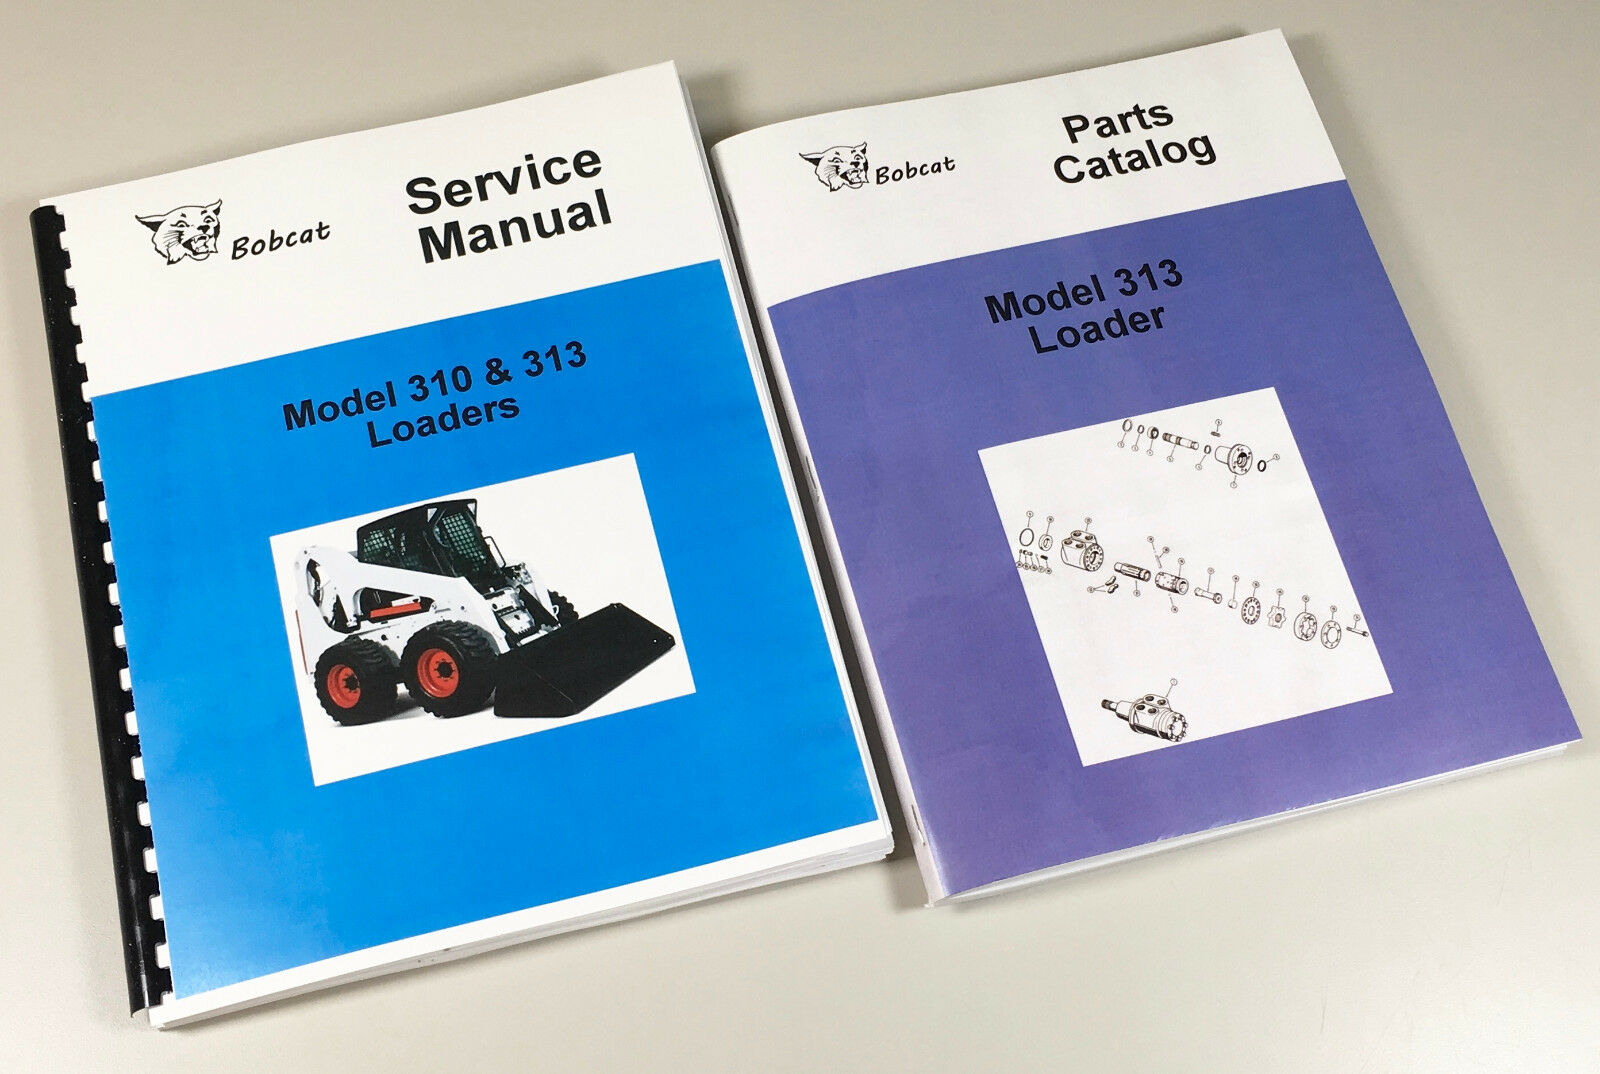 Bobcat repair manuals 313 ebook array bobcat skid steer model 632 manual rh bobcat skid steer model 632 manual angelayu fandeluxe Gallery